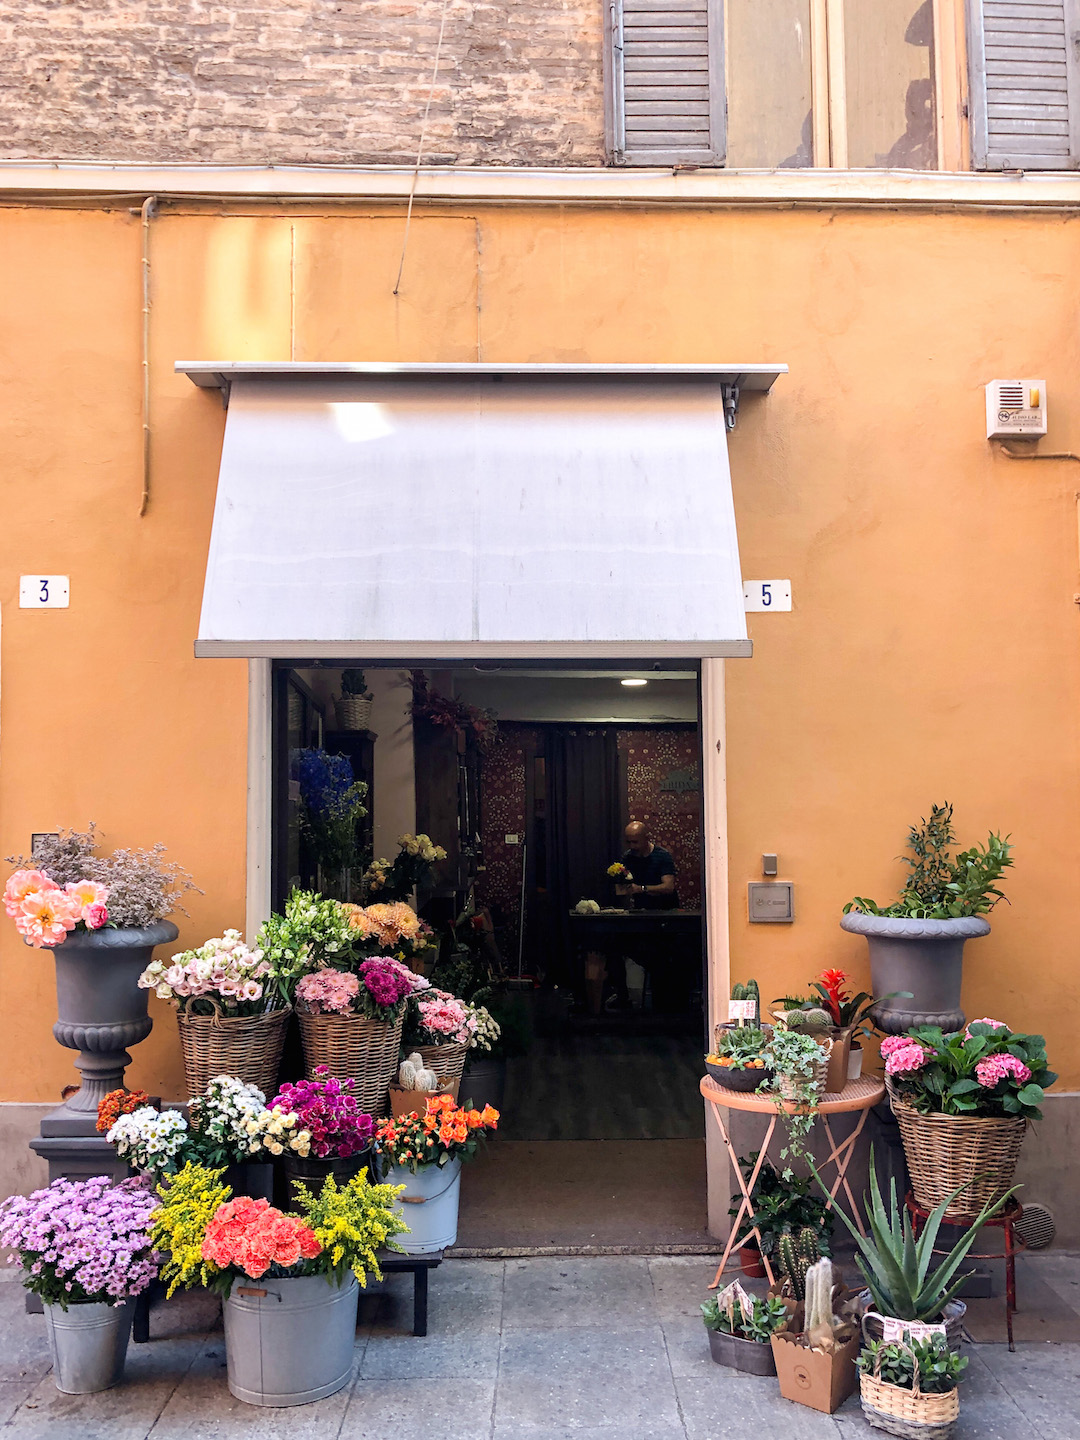 A Flower Shop in Modena, Italy